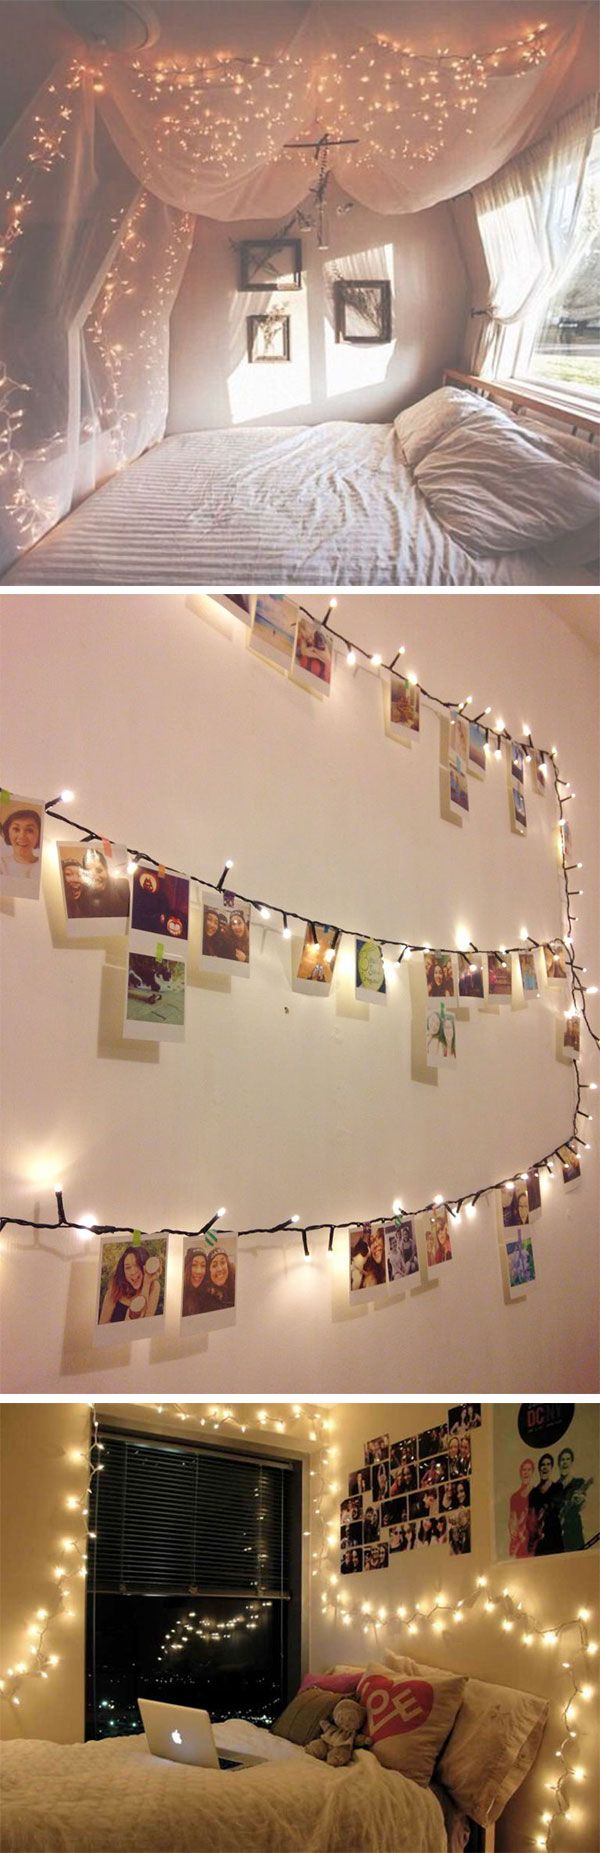 13 ways to use fairy lights to make your home look magical - Home Decorating Ideas For Bedrooms